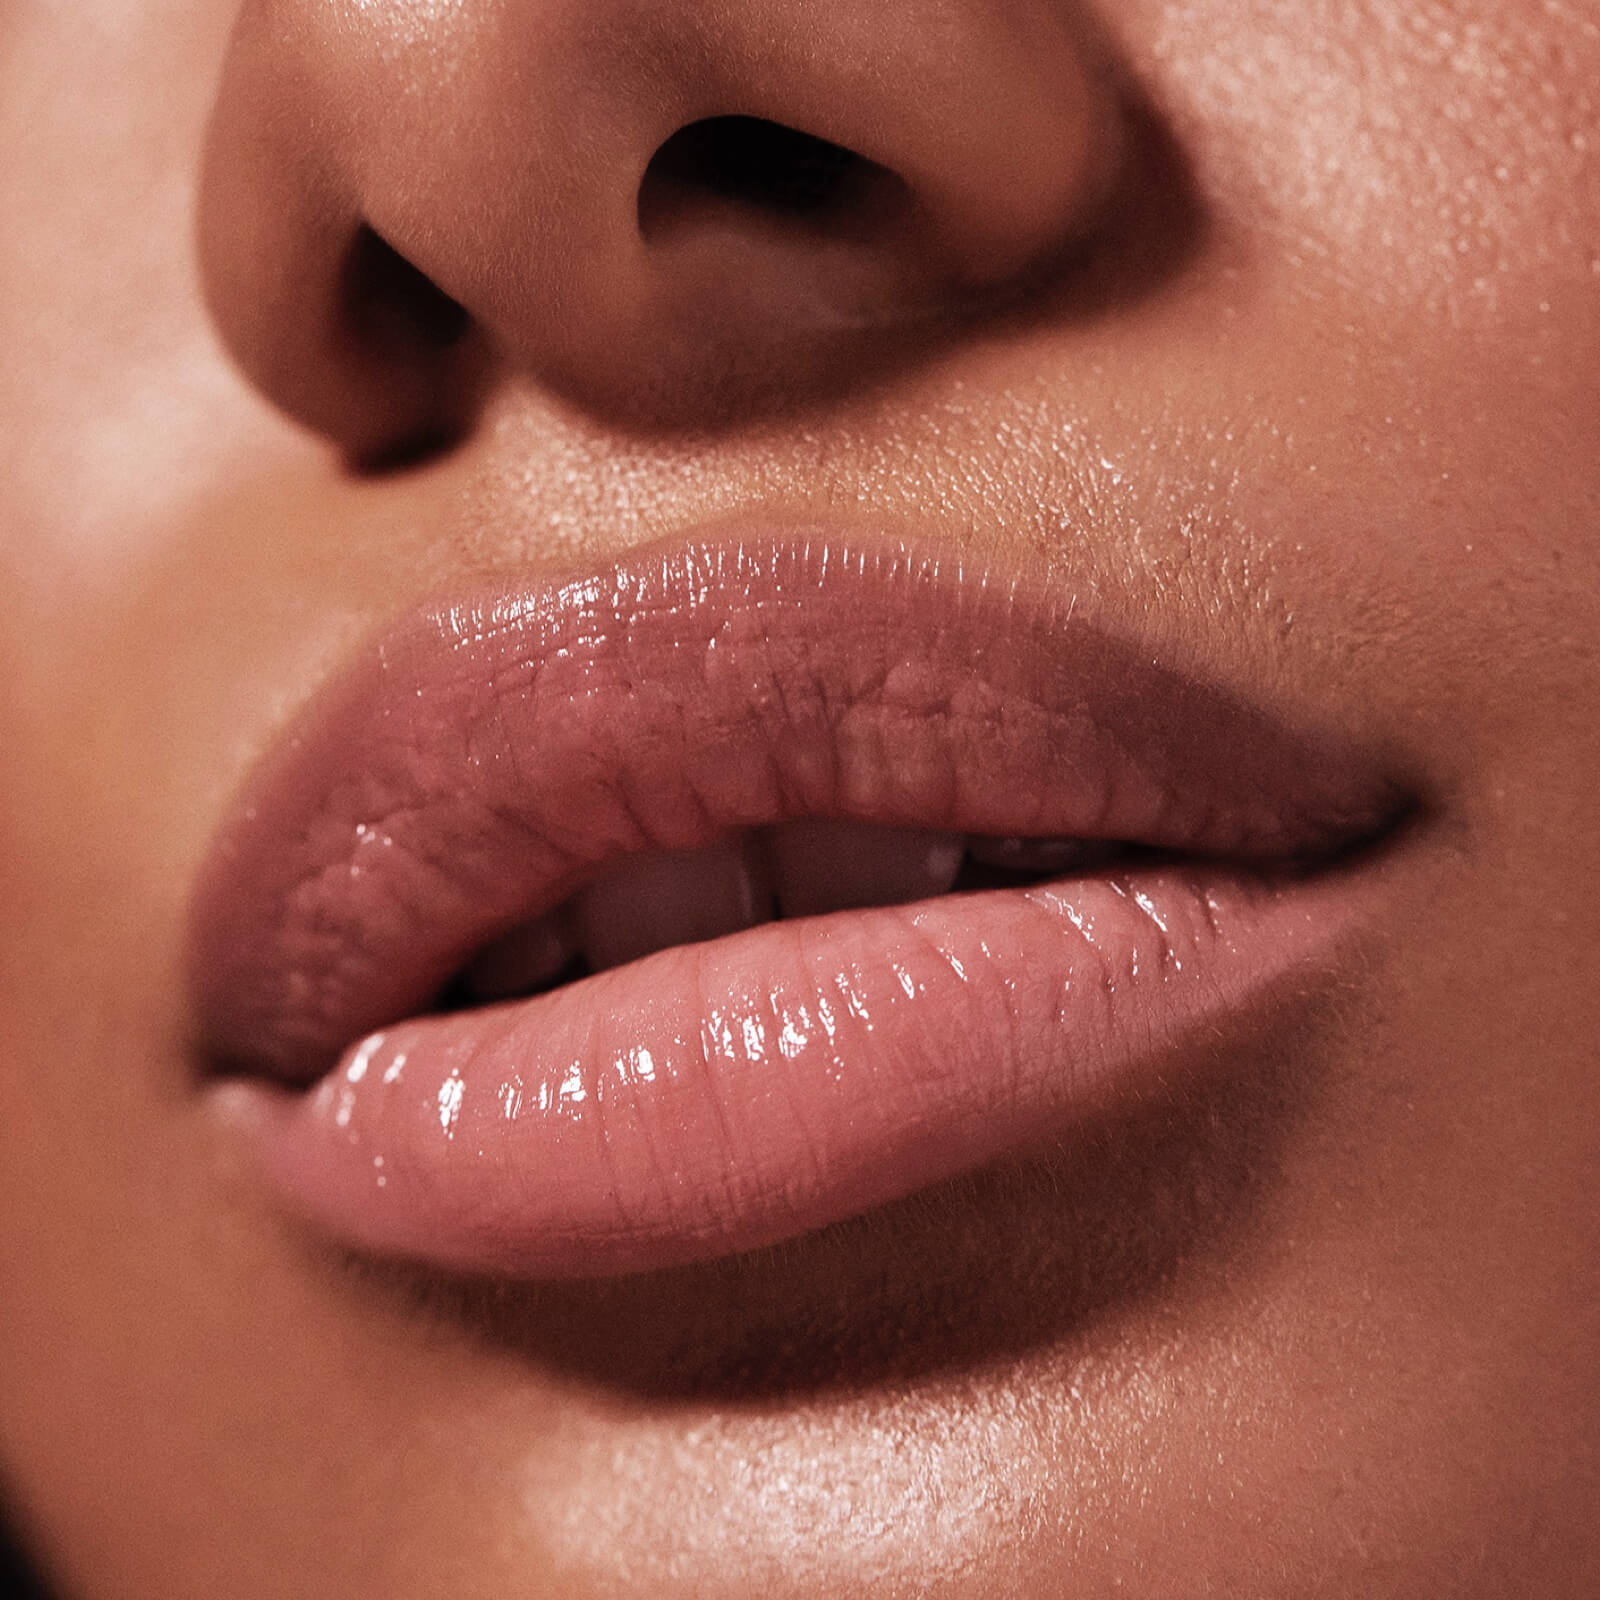 Cosmetic Lip Tattoo Overview - Everything You Need to Know